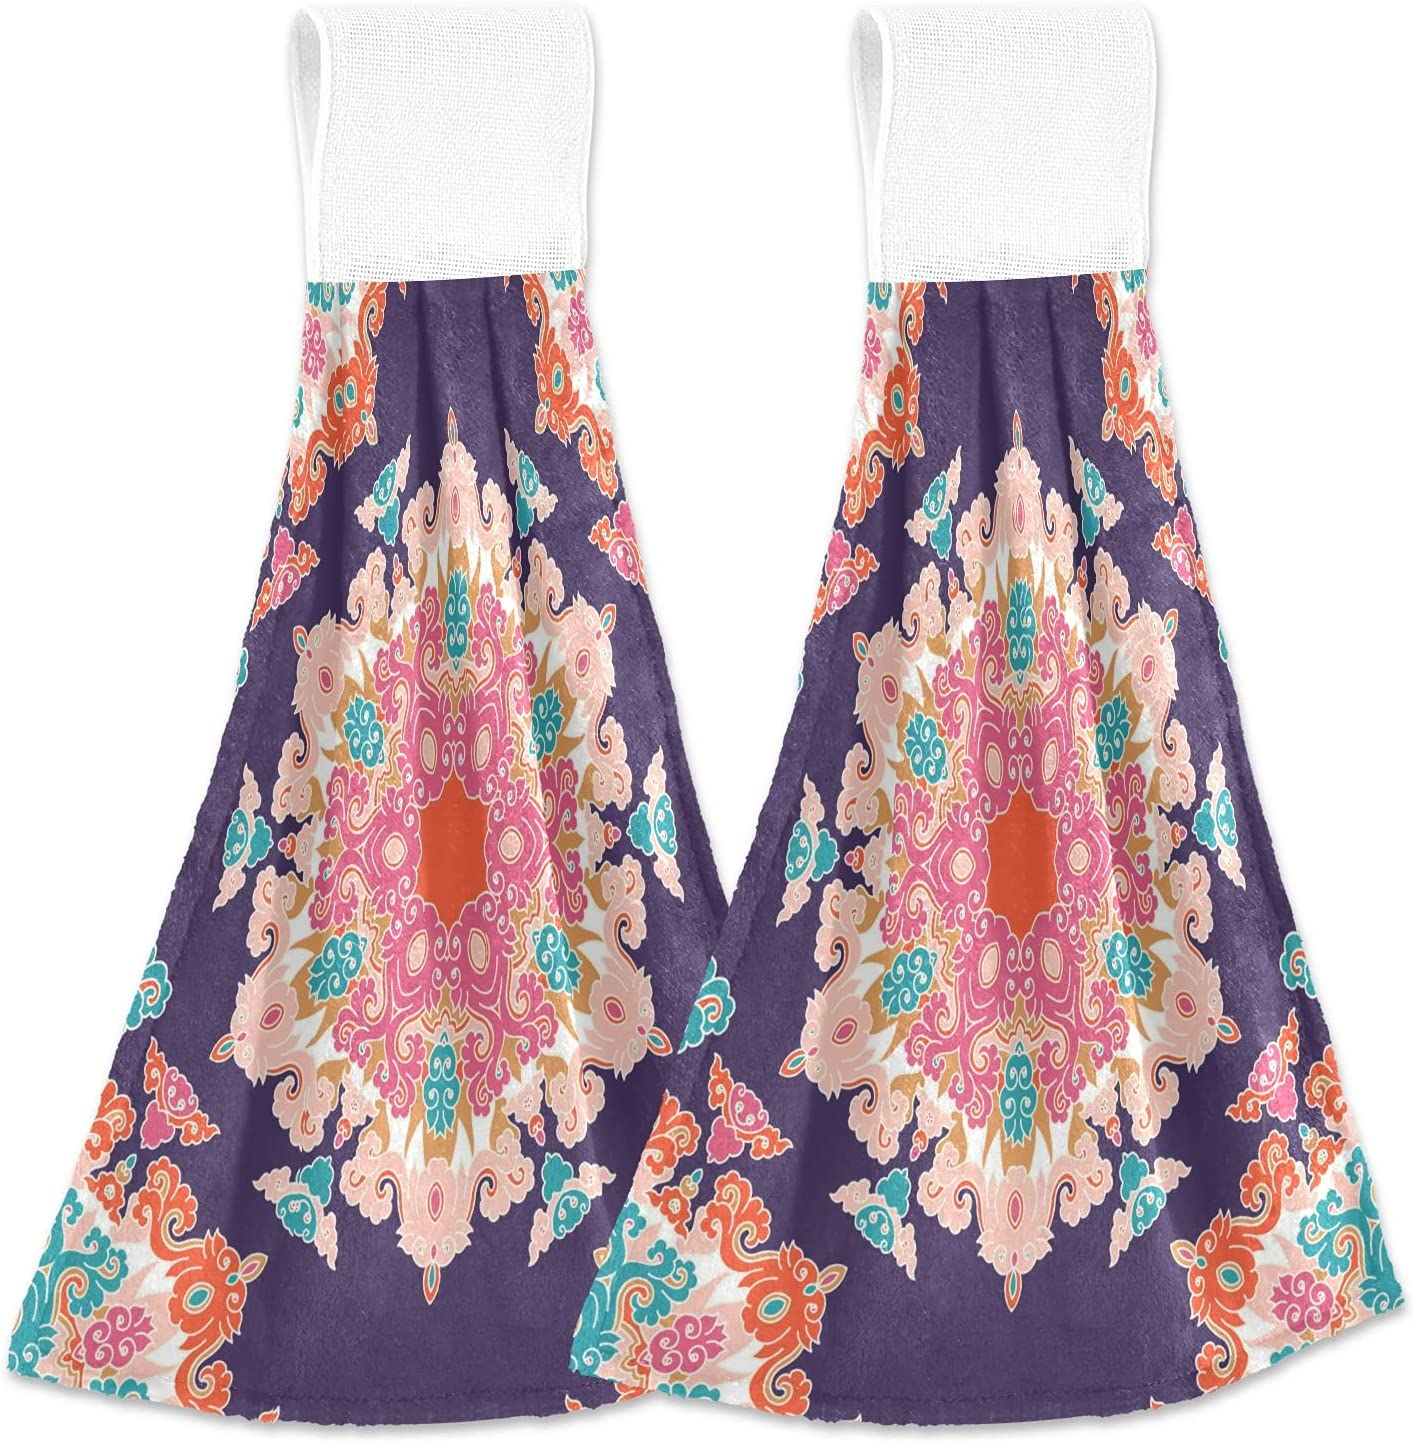 Free Shipping New OcuteO Hanging Kitchen Towels Set online shop Style Vintage Pieces Ethnic 2